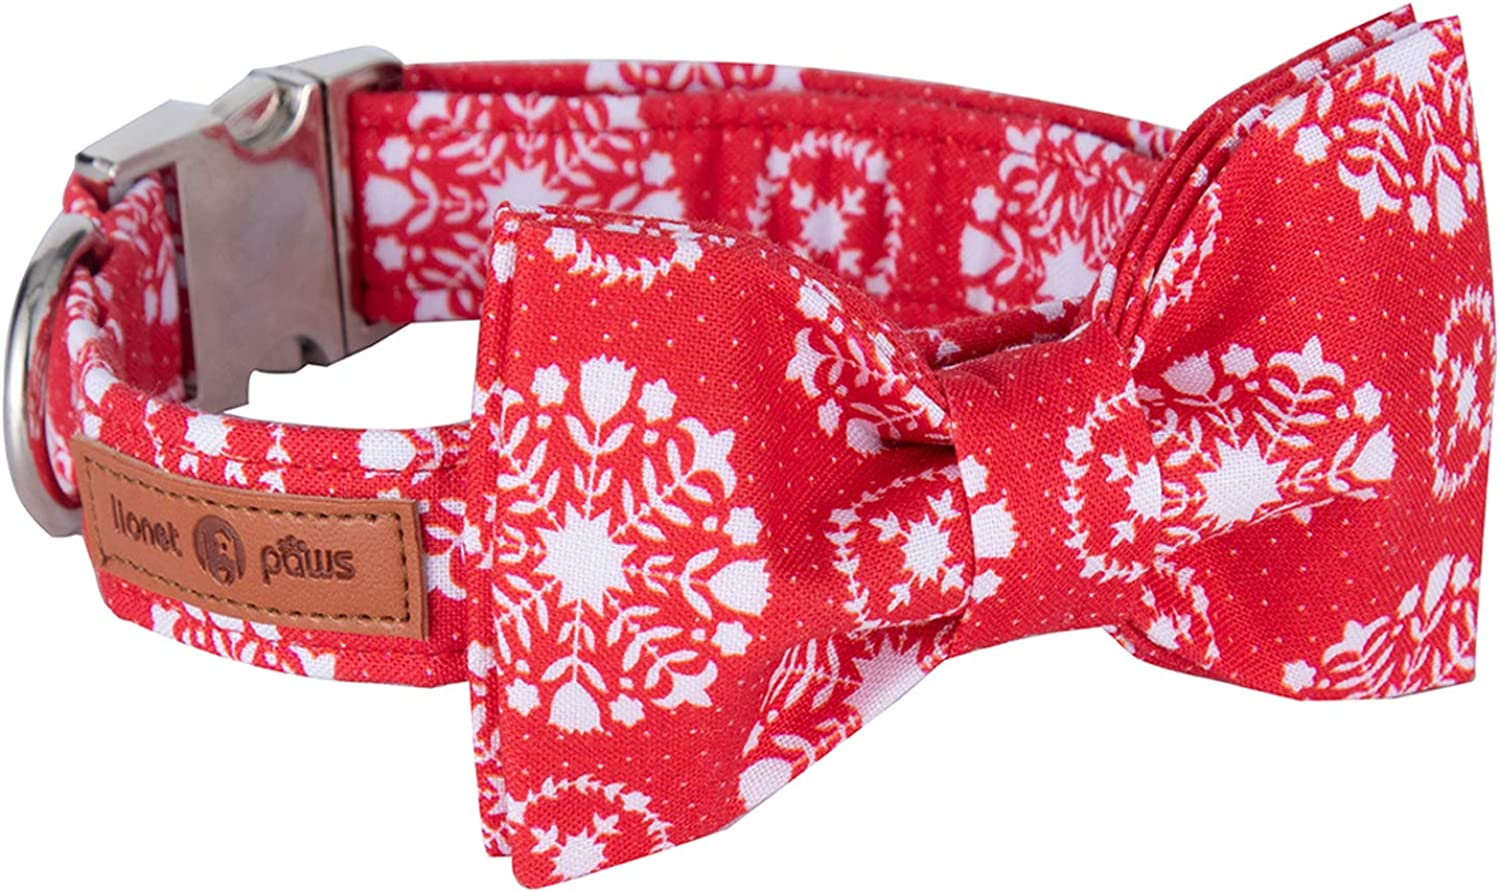 Lionet Paws Christmas Dog Collar with Bowtie Durable Adjustable Handmade Comfortable Cotton Bowtie Dog Collar Cat Collar with Metal Buckle for Small Dogs Cats,Party,Festival,Holiday Style,Neck 1016in